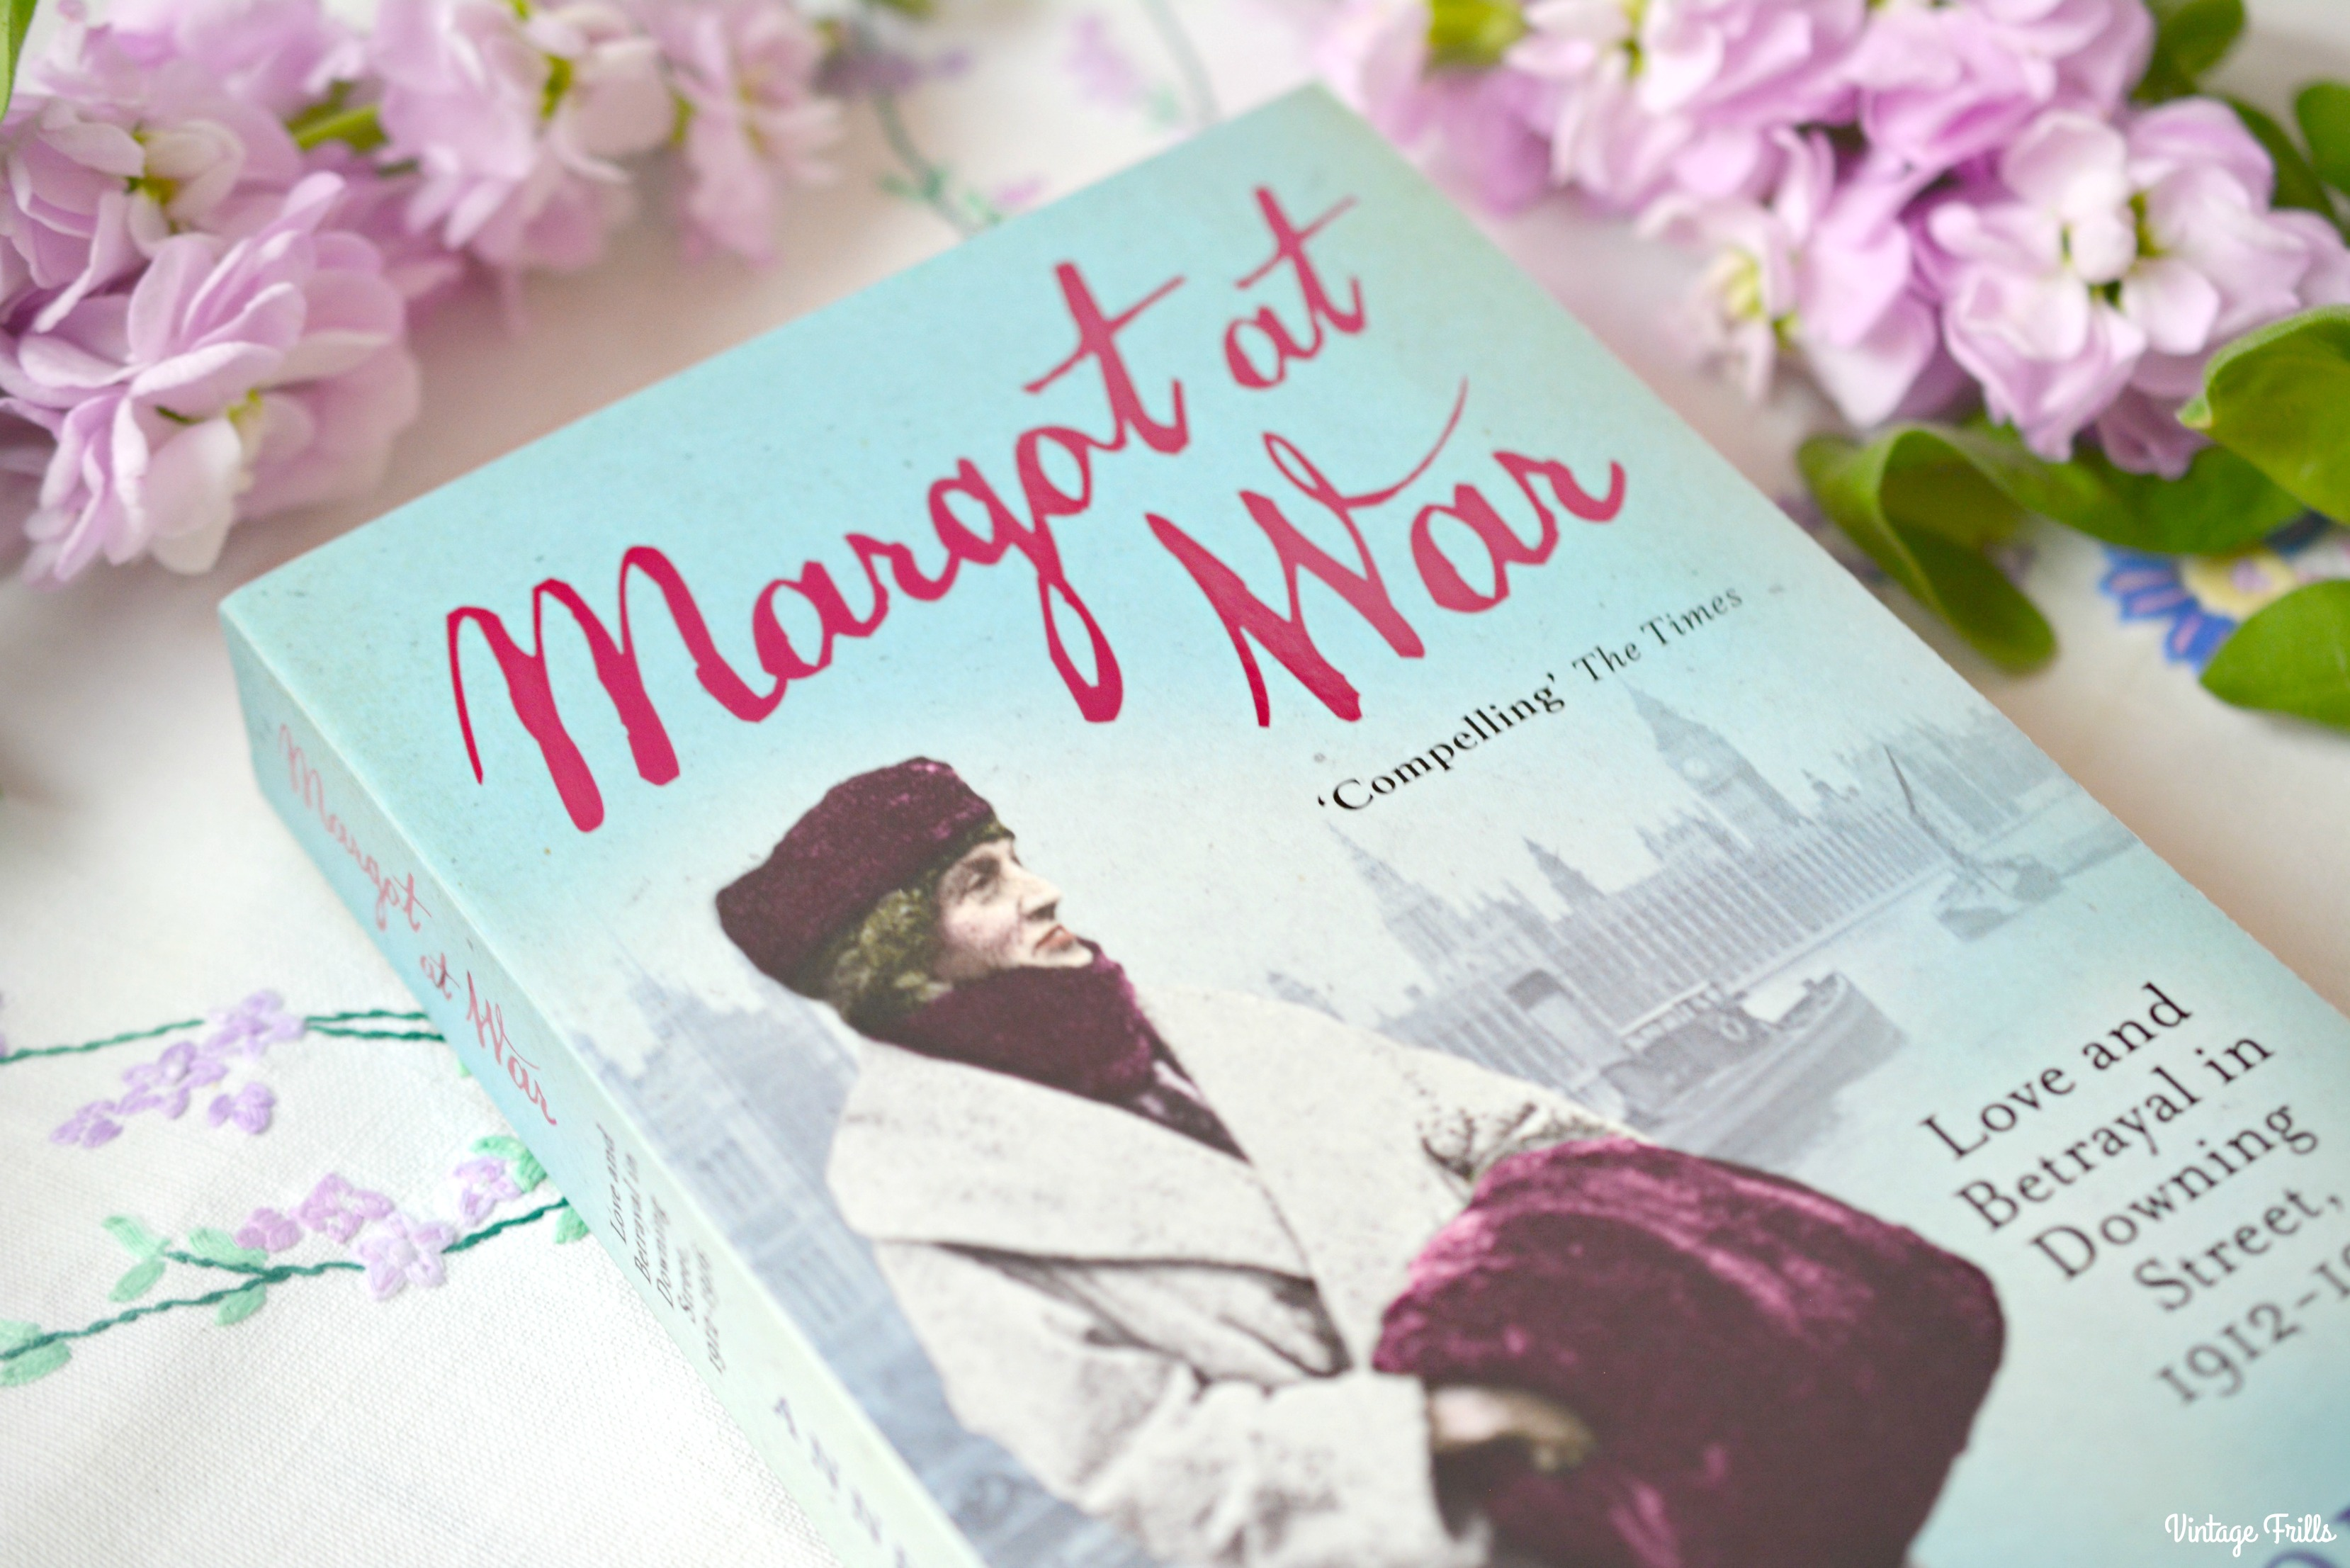 Book Review - Margot at War